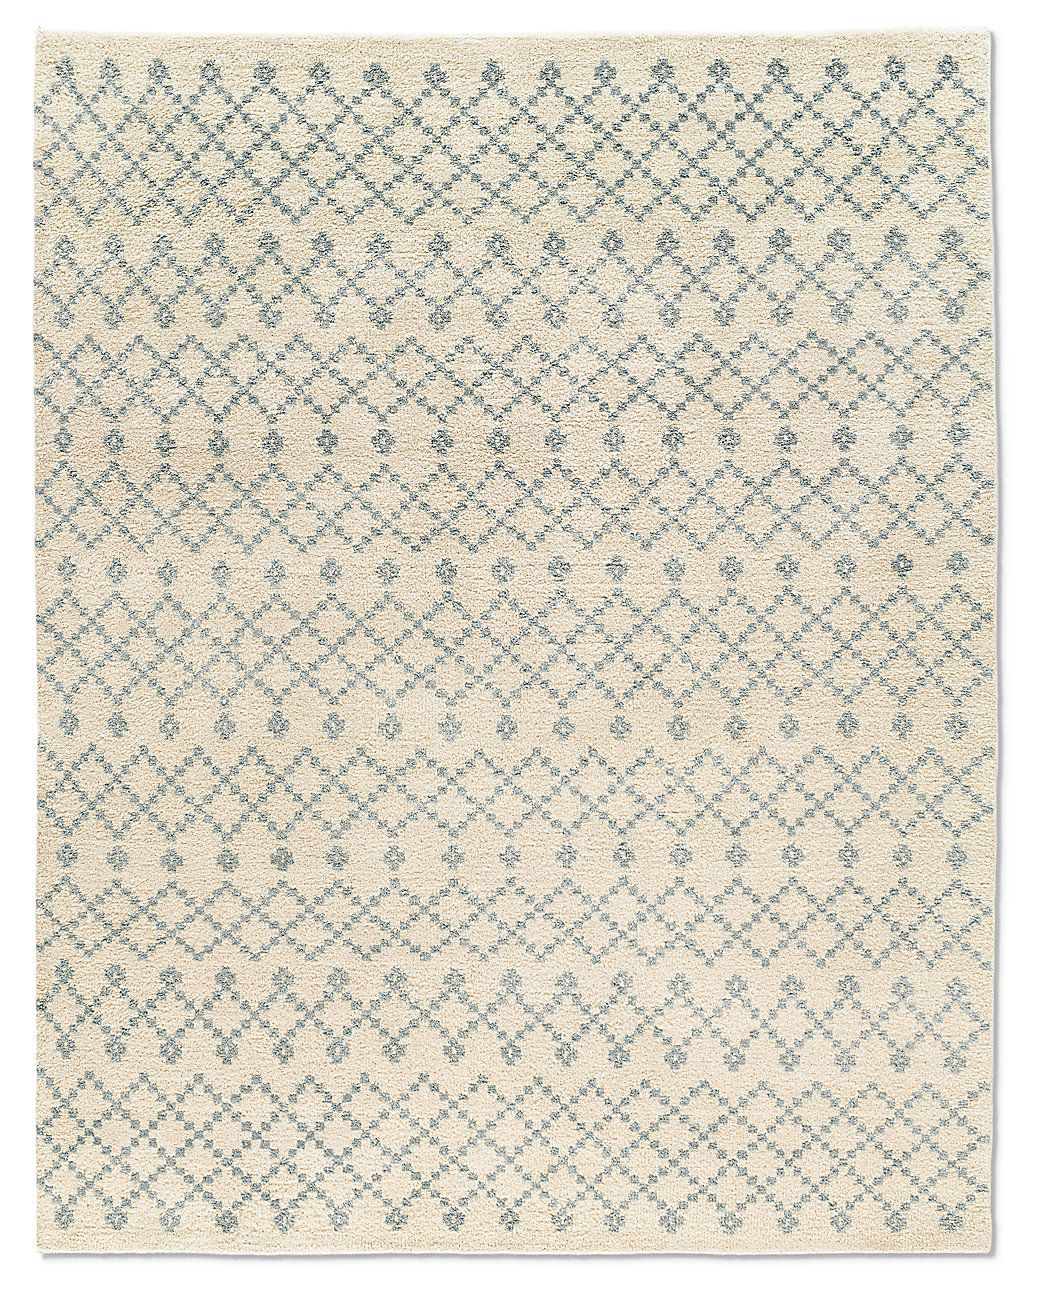 Tazza Rug - Cream